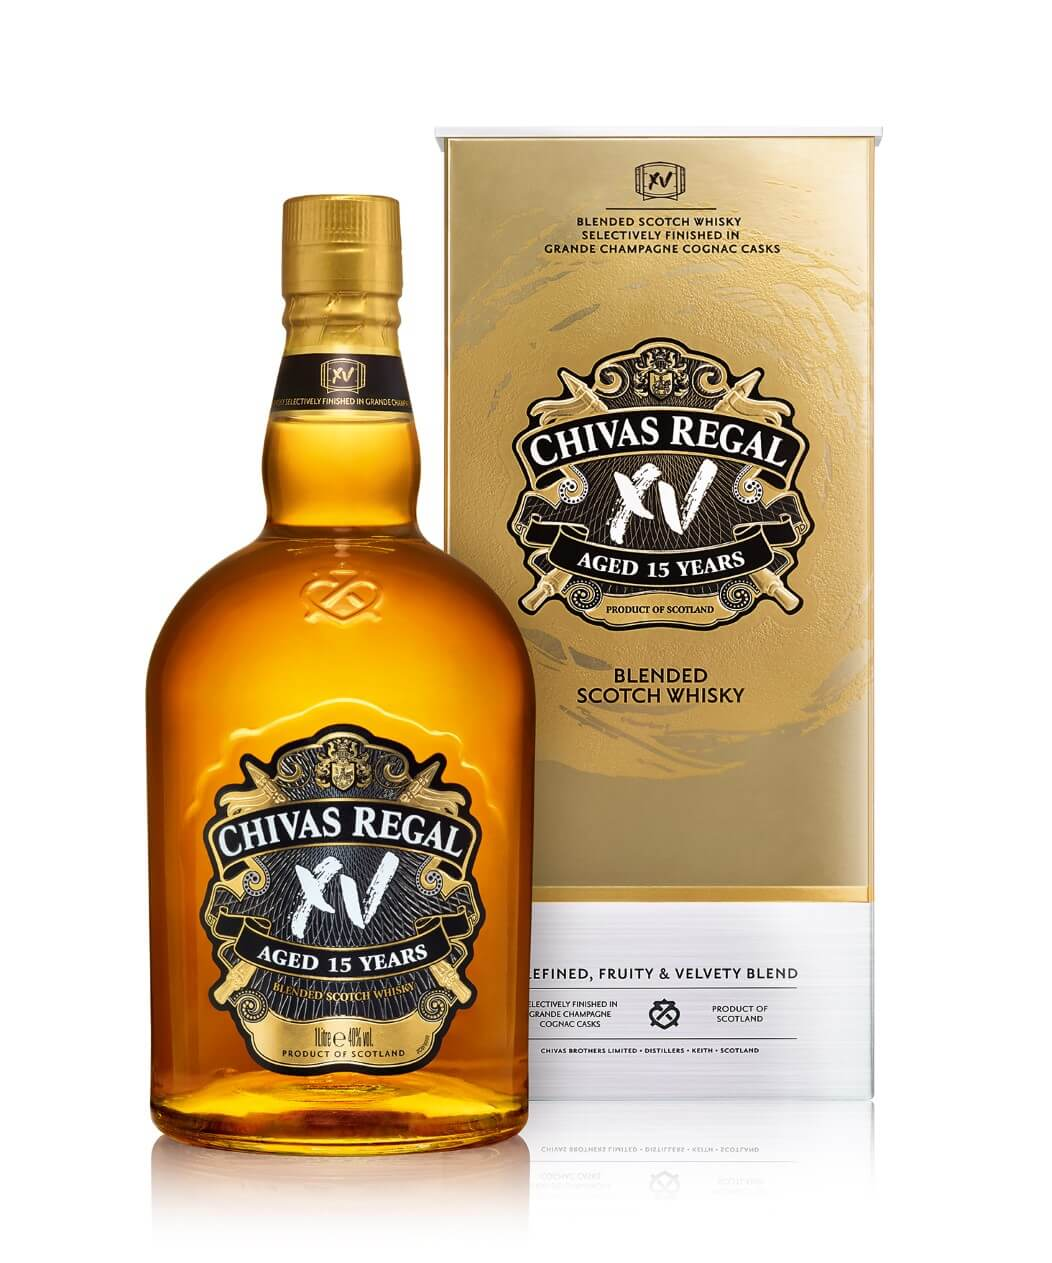 Chivas Regal XV is finished in Grand Champagne Cognac Casks